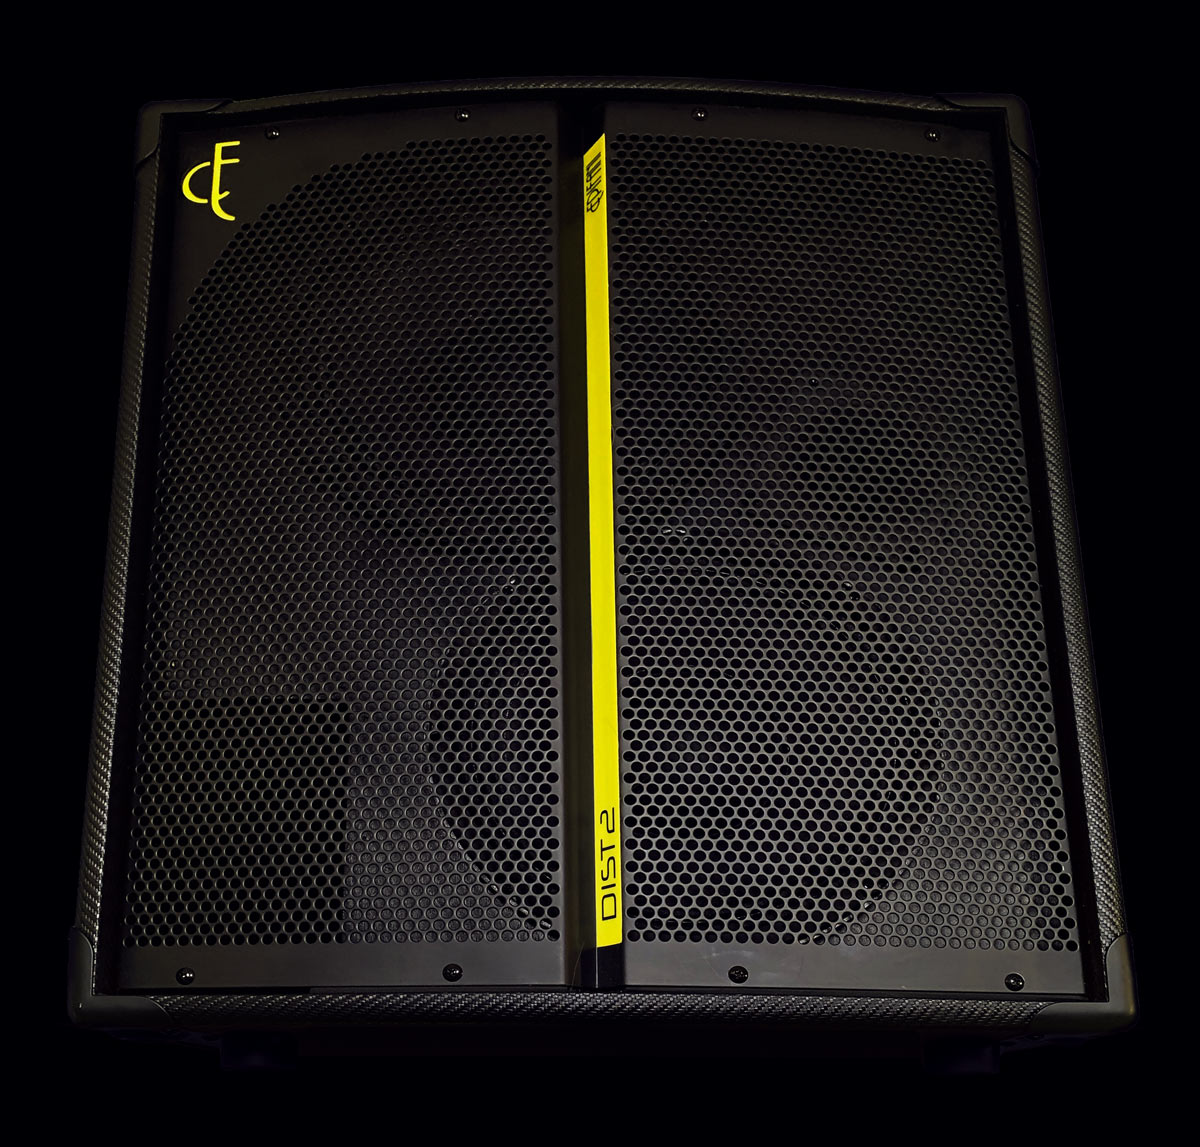 Legendary SoundOur biggest, clearest, most precise speaker cab ever. - Every aspect of DIST2 is designed to deliver a highly accurate picture of your personal sound across the frequency spectrum. No matter what style you play, your unique tone comes through in every transient, harmonic, and room-shaking boom. This is your legendary sound.